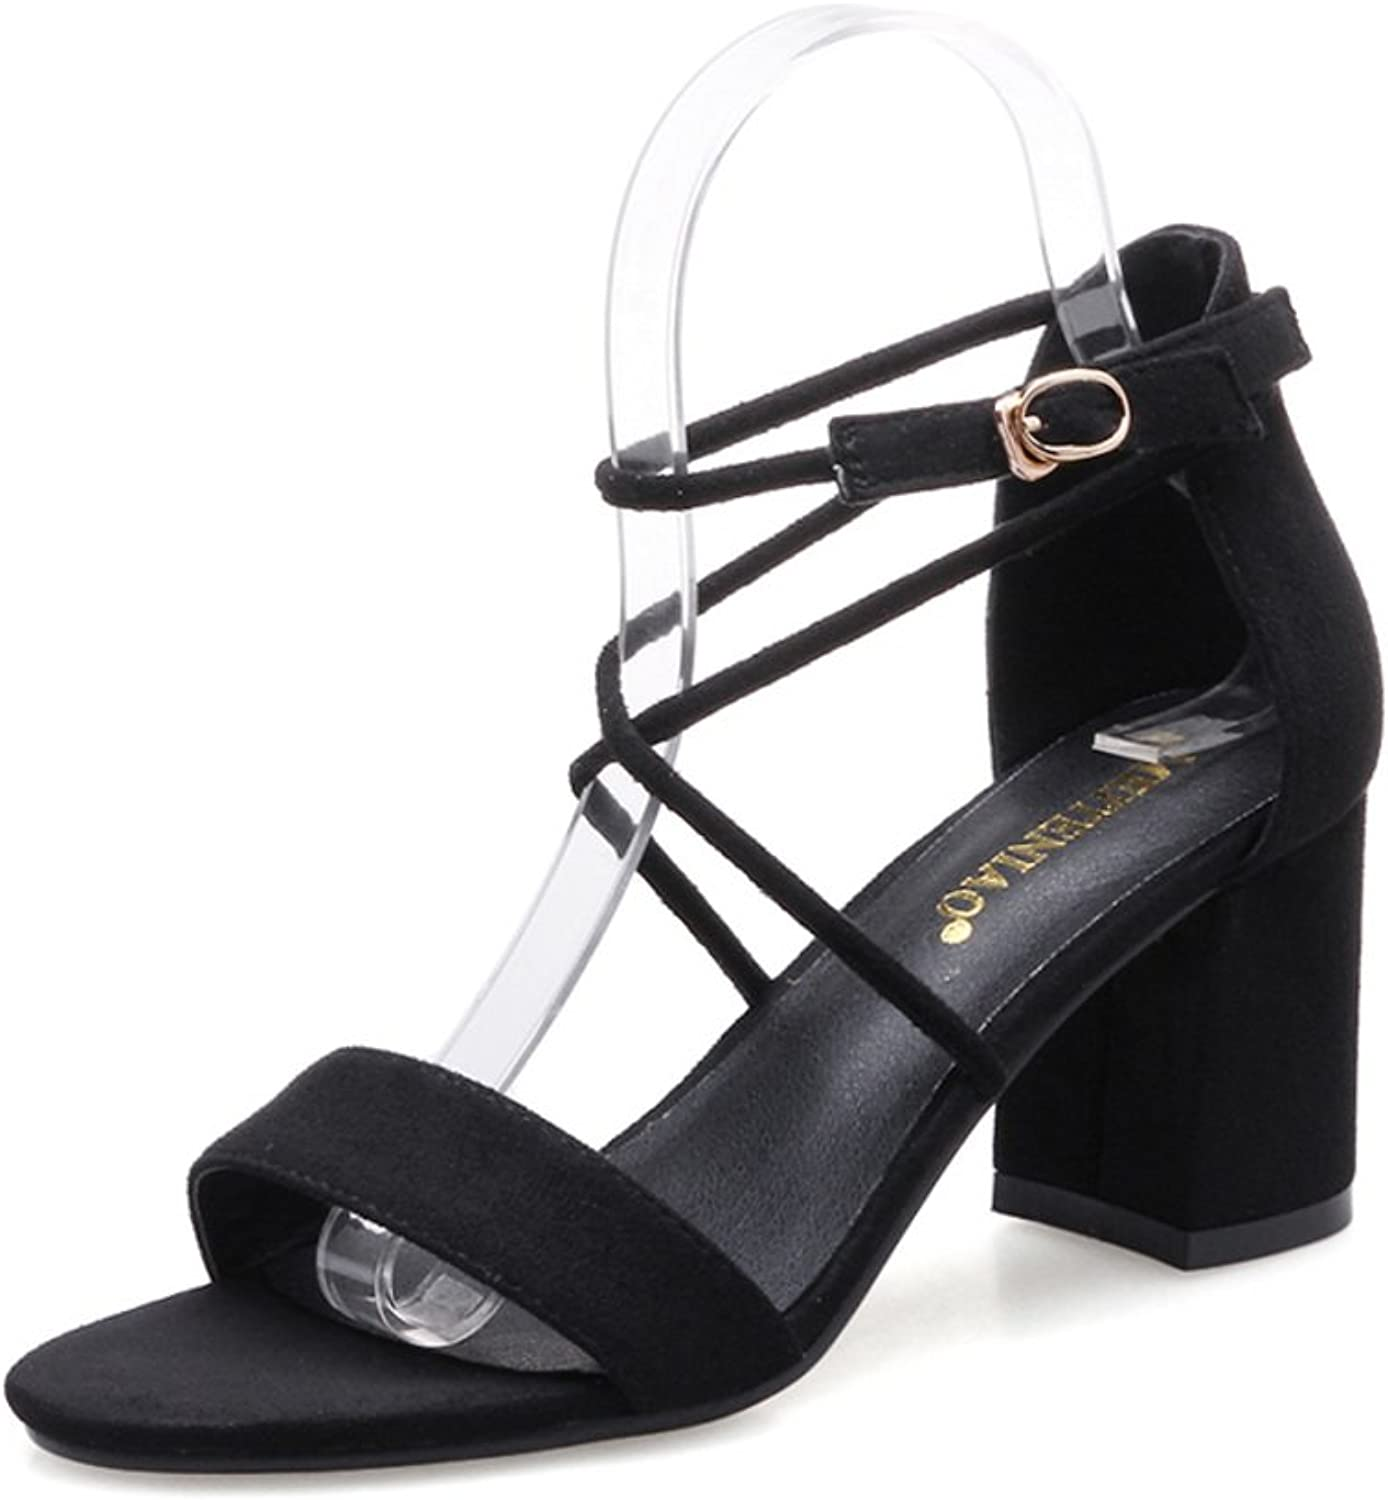 With Rough With Black Sandals,Joker-toe Buckle shoes-Black Foot length=22.8CM(9Inch)